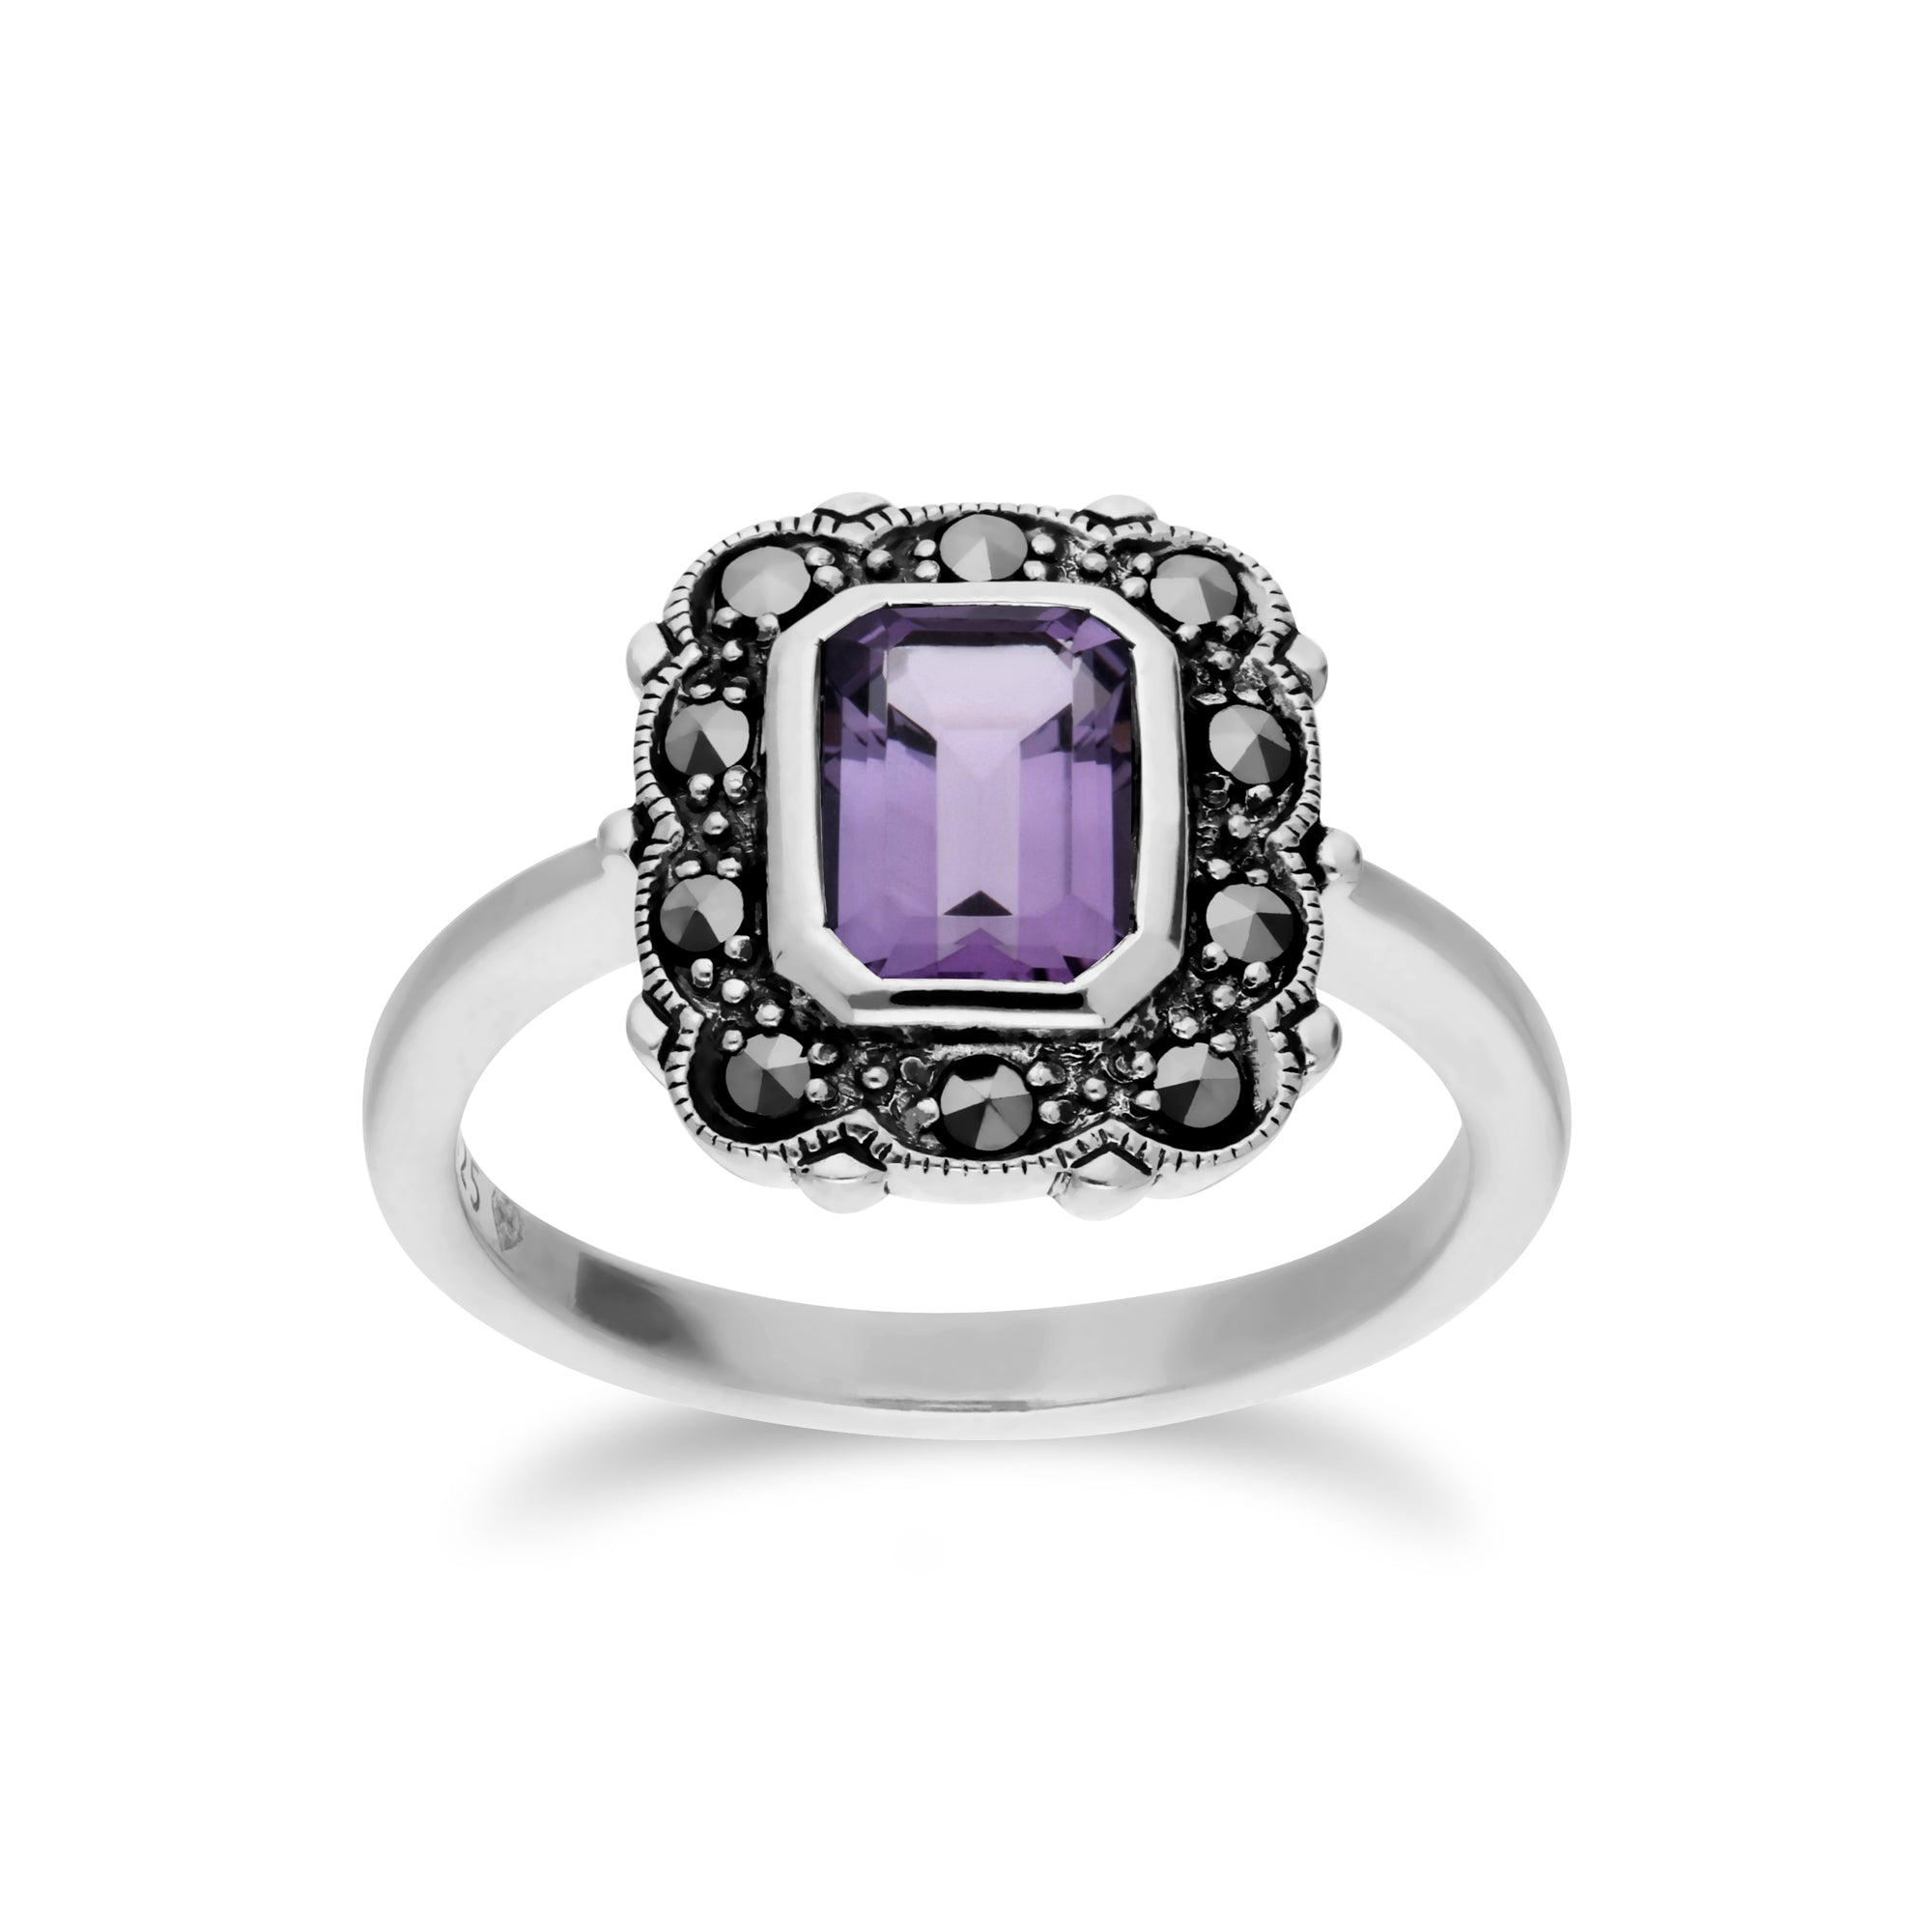 Faceted Amethyst Pendant 925 Sterling Silver Square Marquise Round 3-Gem New